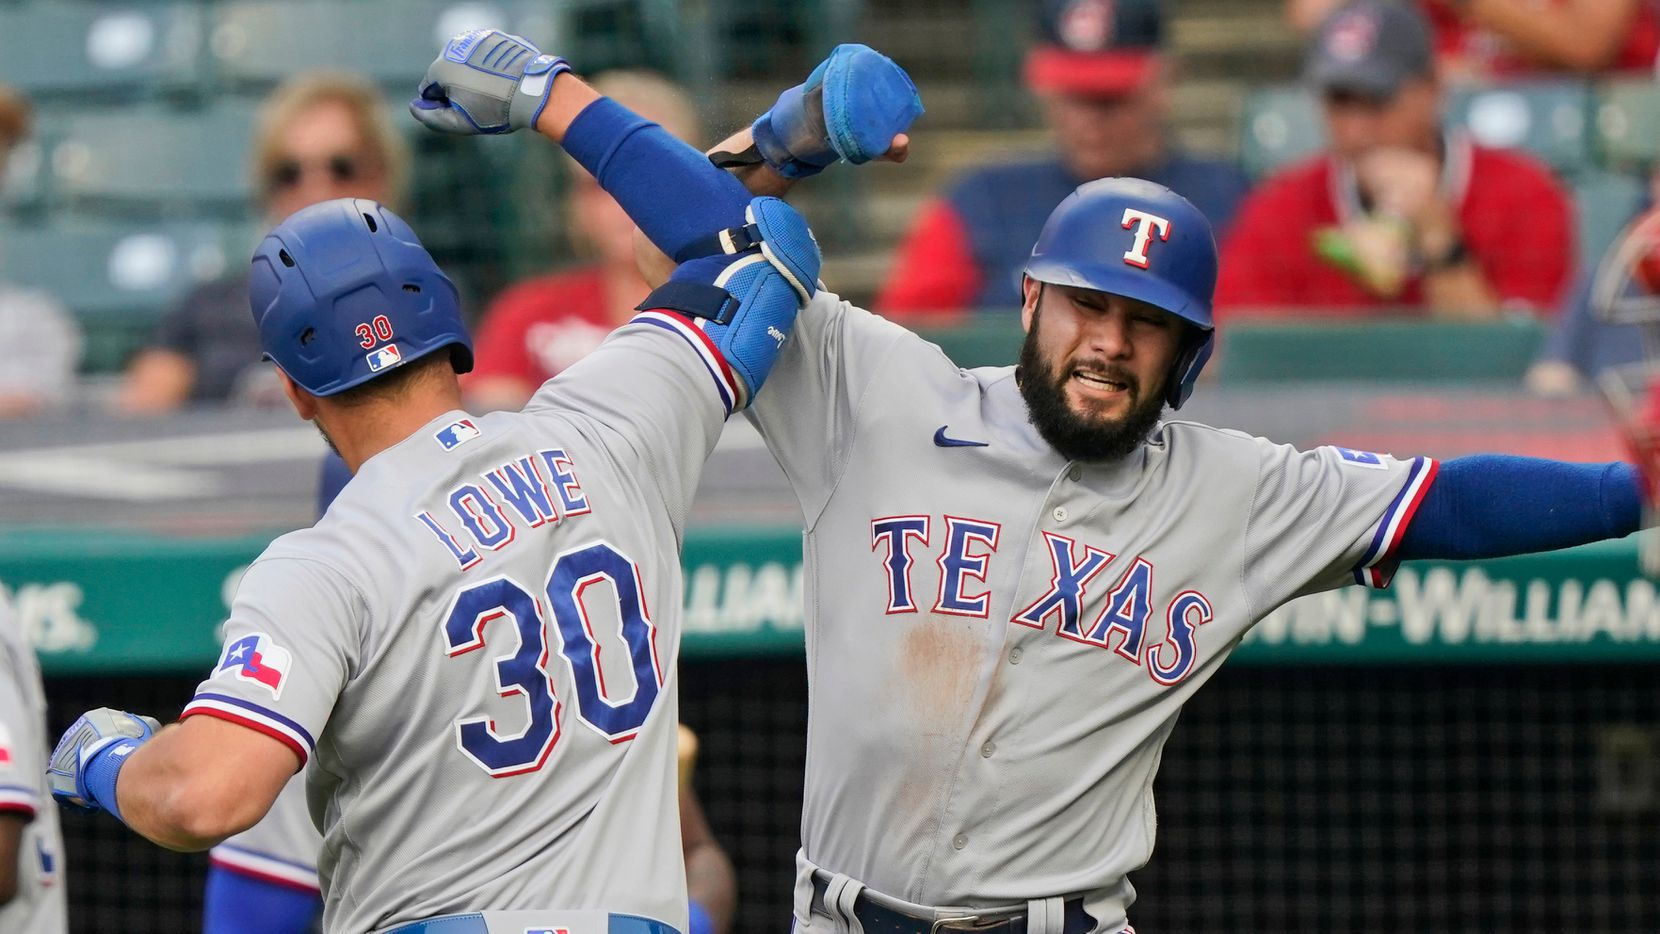 Texas Rangers' Isiah Kiner-Falefa, right, congratulates Nathaniel Lowe after Lowe hit a three-run home run in the first inning of a baseball game against the Cleveland Indians, Tuesday, Aug. 24, 2021, in Cleveland. (AP Photo/Tony Dejak)